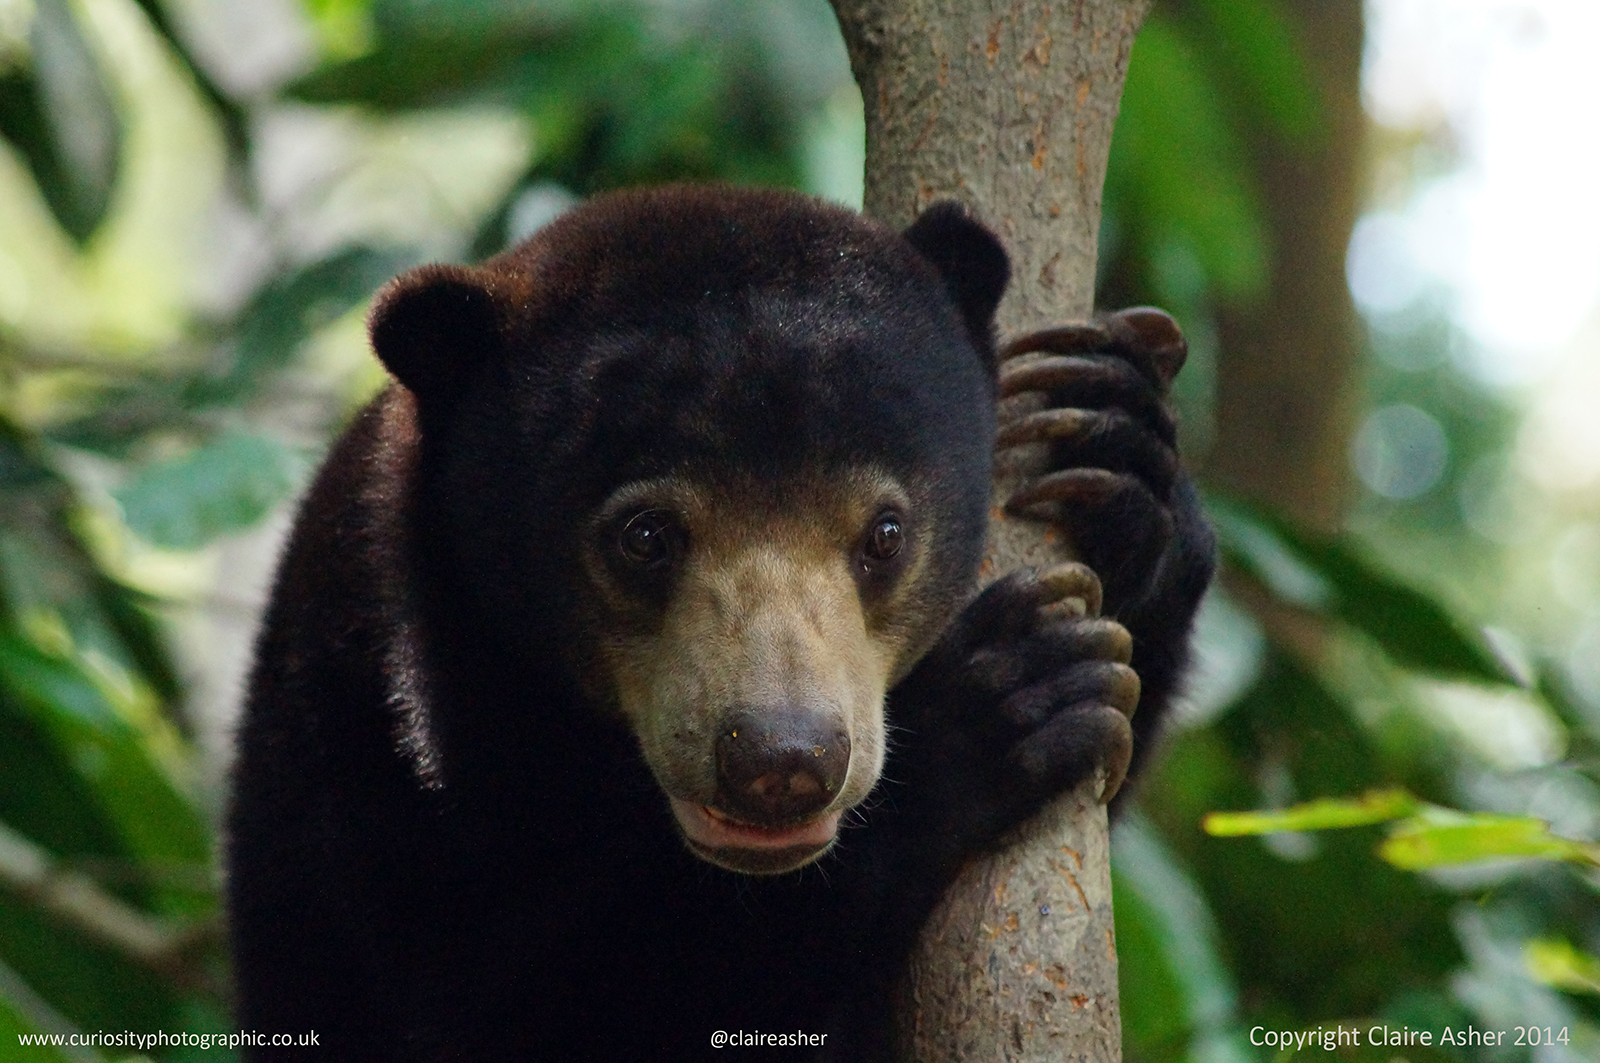 A sunbear (Helarctos malayanus photographed in captivity in Borneo, Malaysia in 2014.